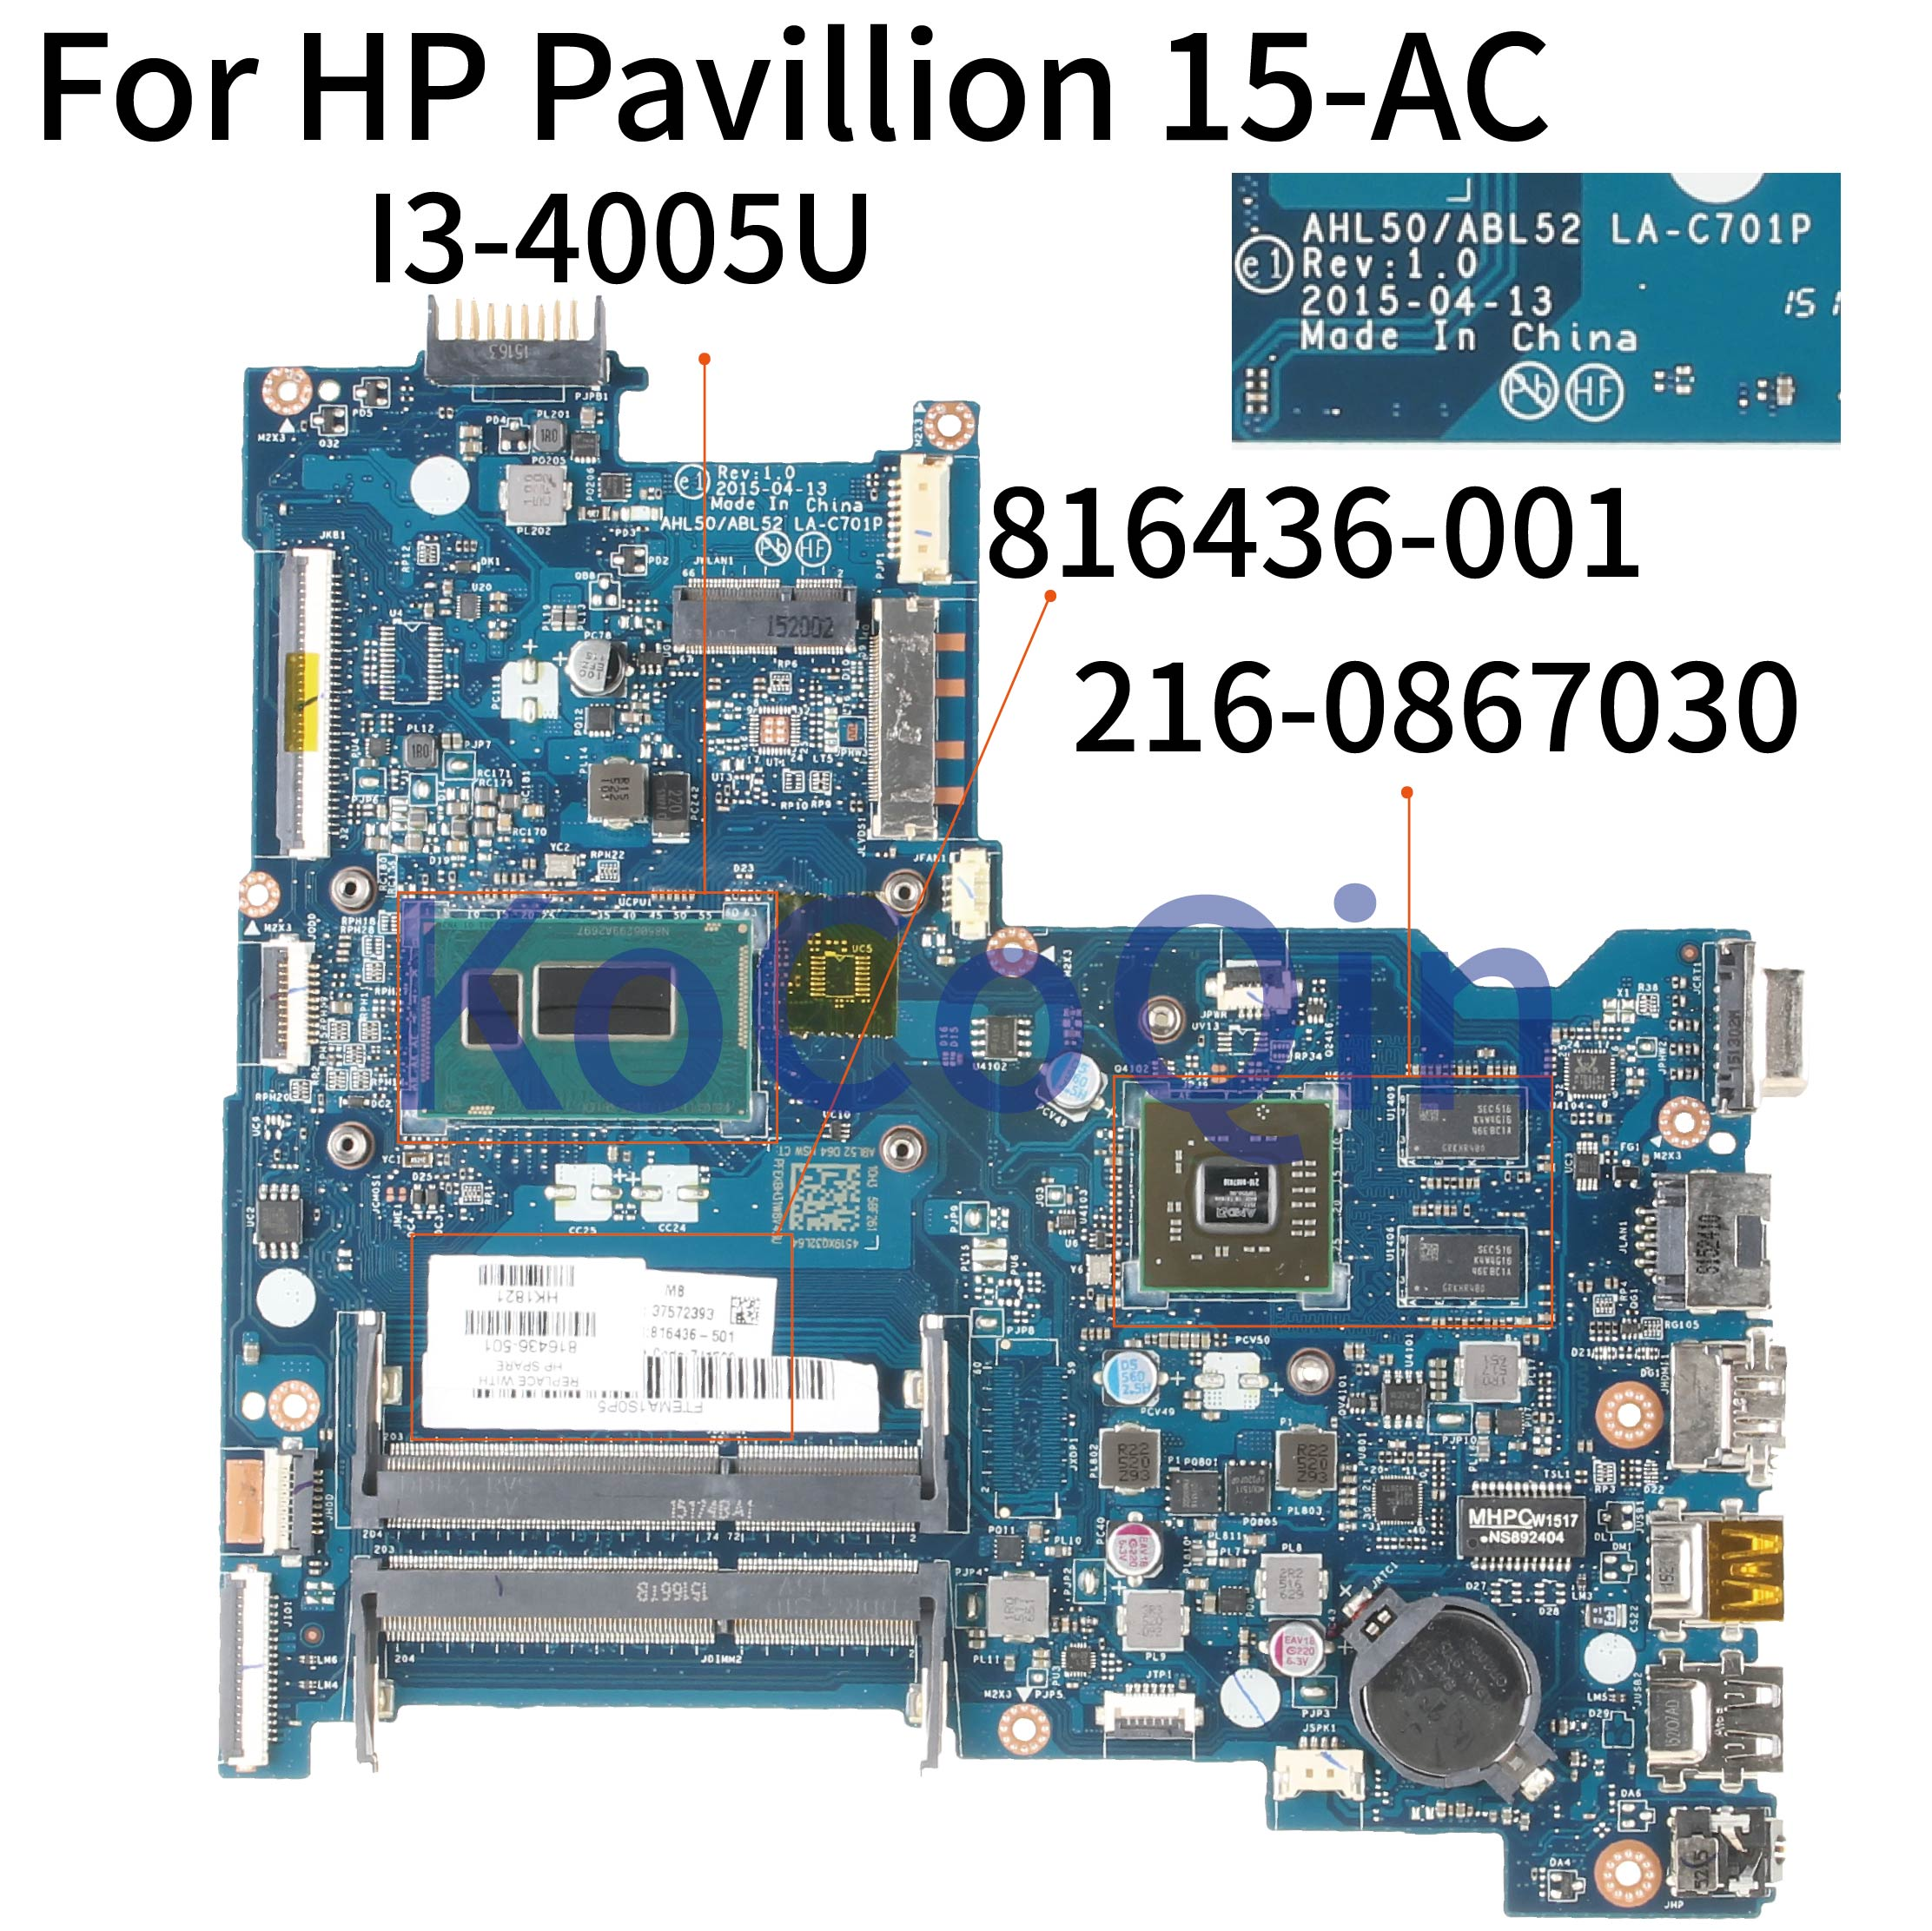 KoCoQin Laptop motherboard For HP Pavillion 15 AC 250 G4 Core I3 4005U Mainboard 816436 001 816436 501 LA C701P 216 0867030|Laptop Motherboard| |  - title=